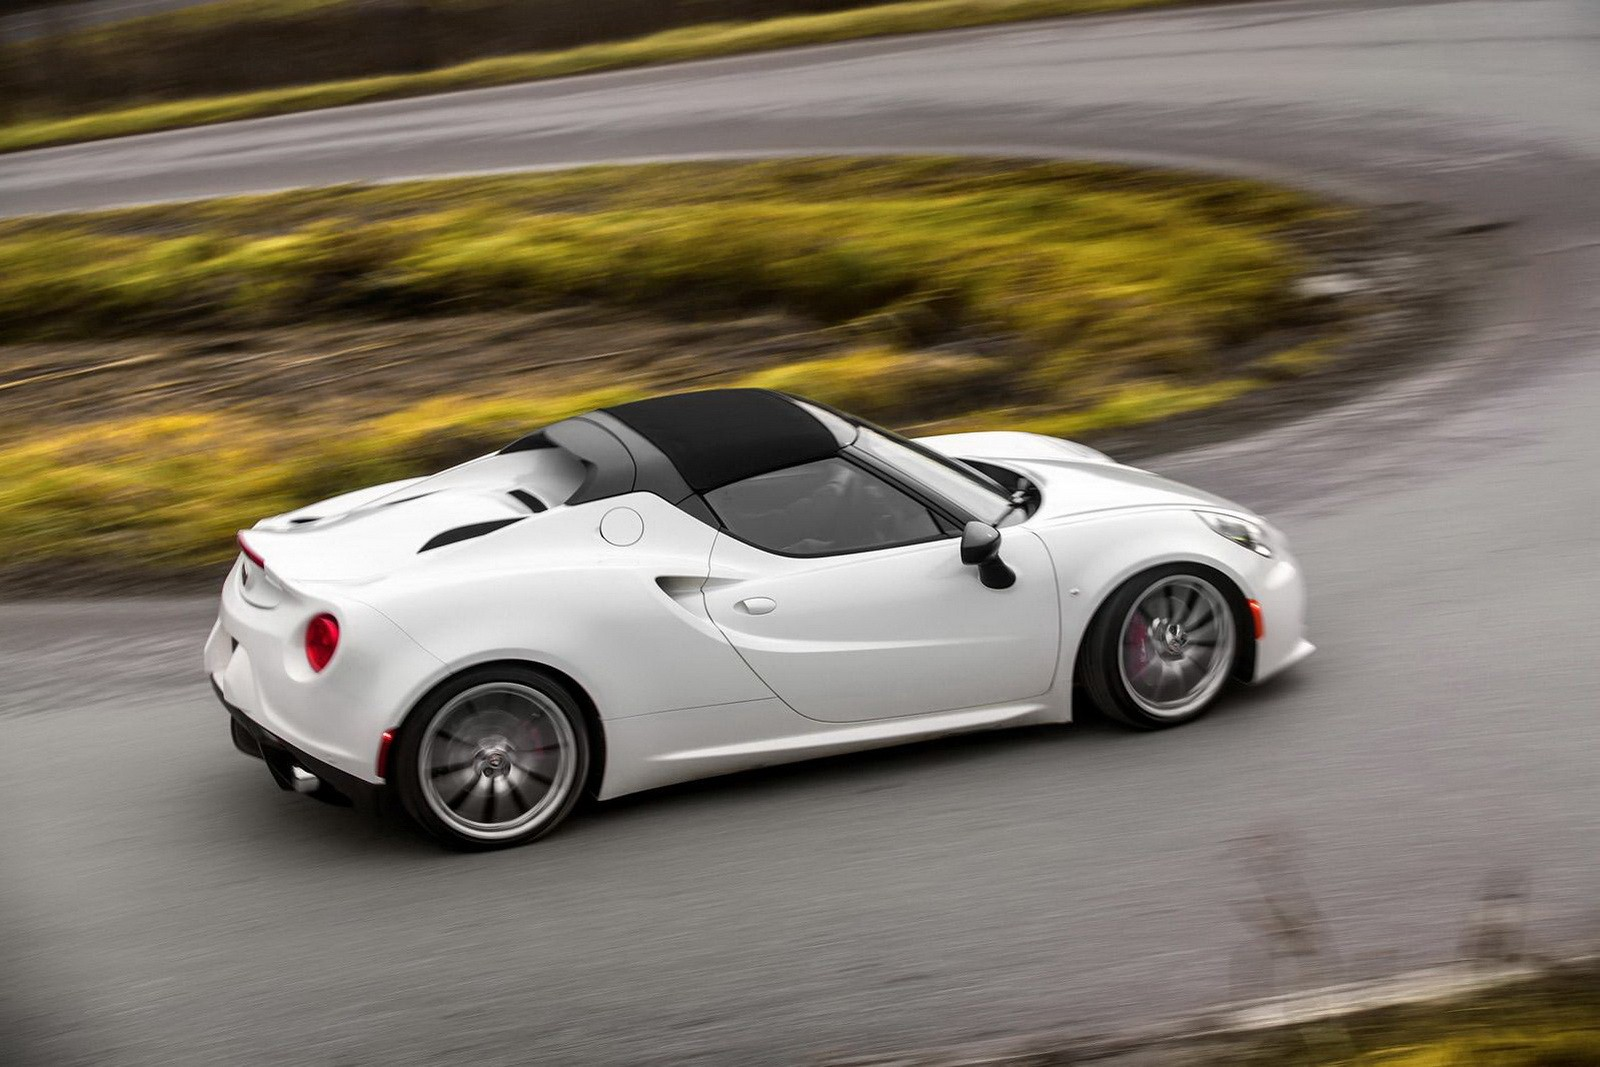 Alfa romeo 4c spider price south africa